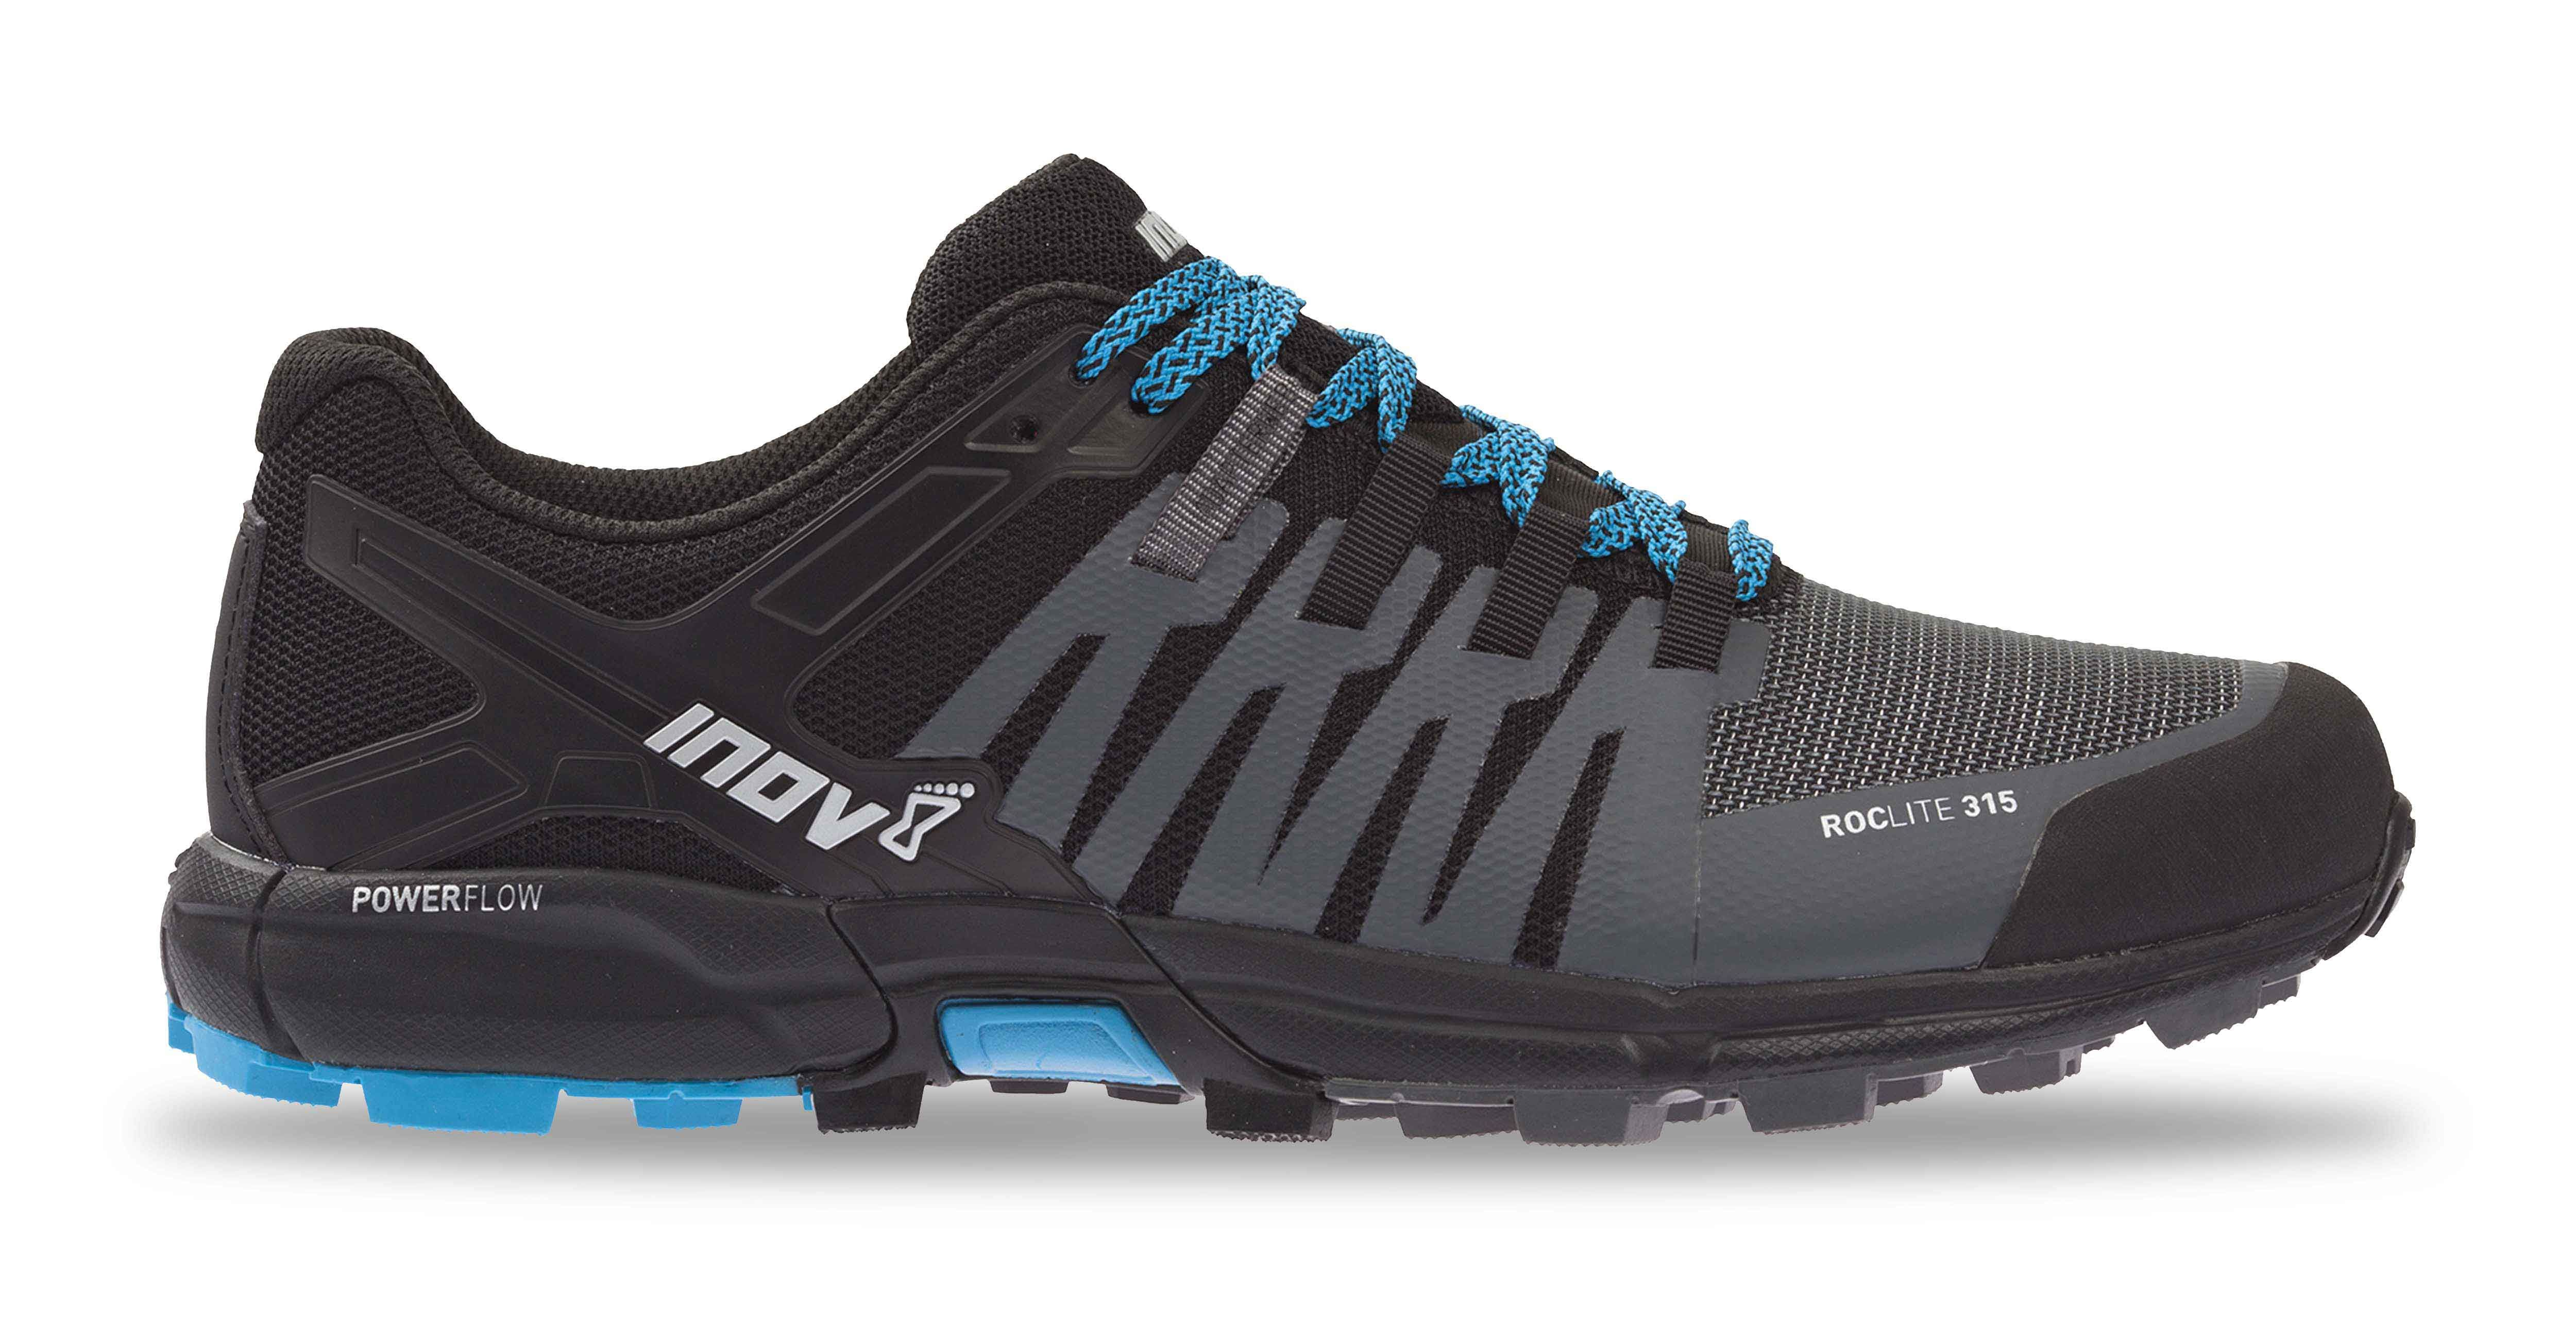 Inov-8 Roclite 290 Mens Multi Terrain Sneakers Sport Hiking Trail Running Shoes